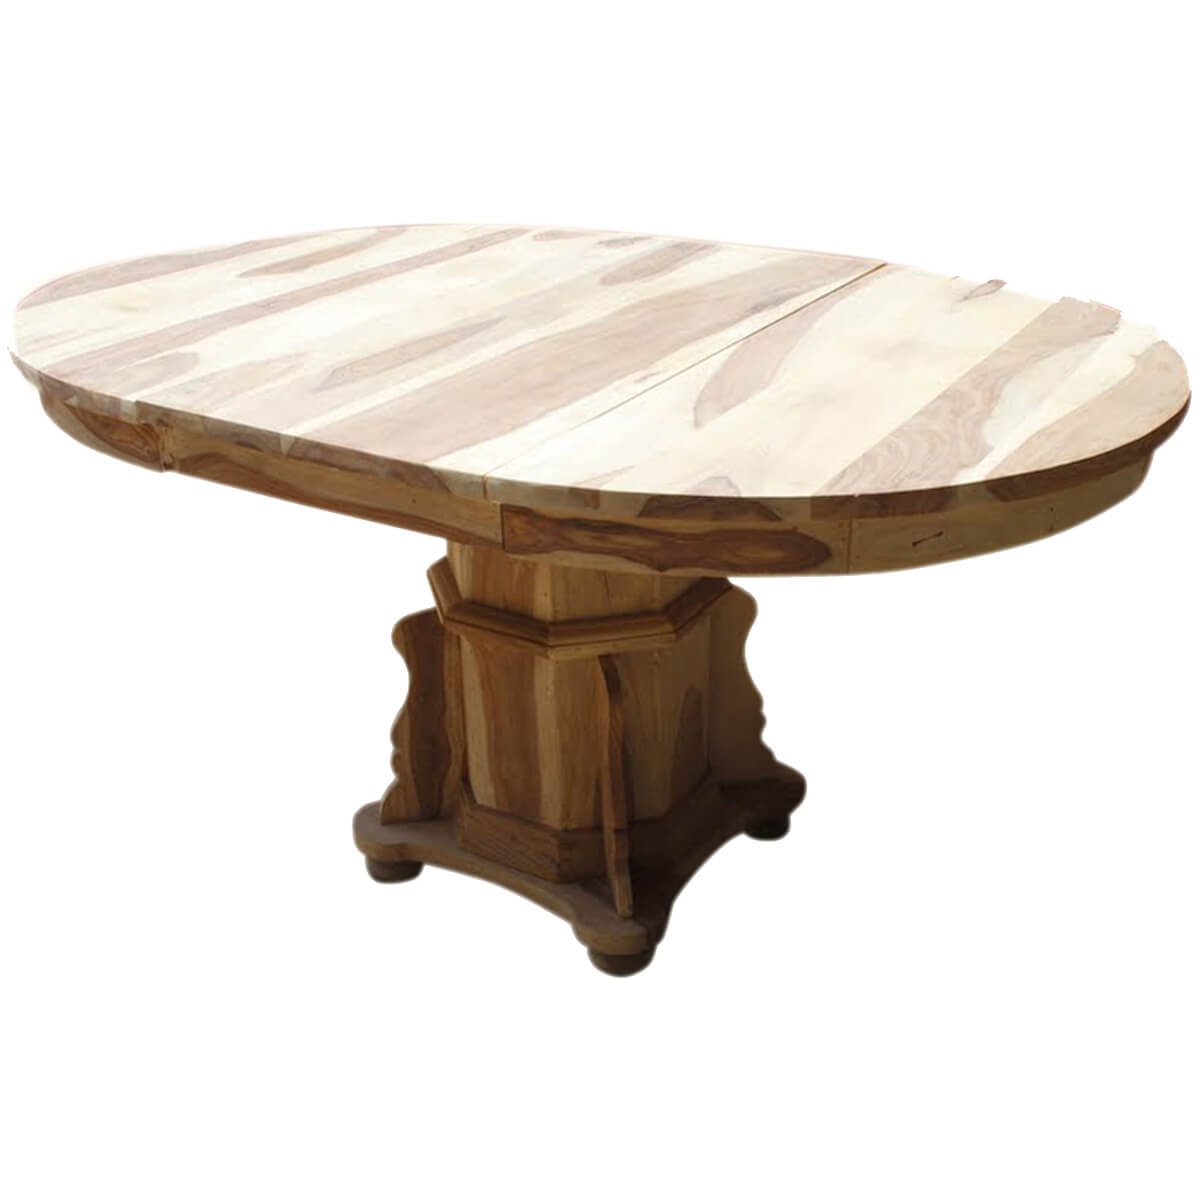 Dallas Ranch Solid Wood Pedestal Round Dining Table W